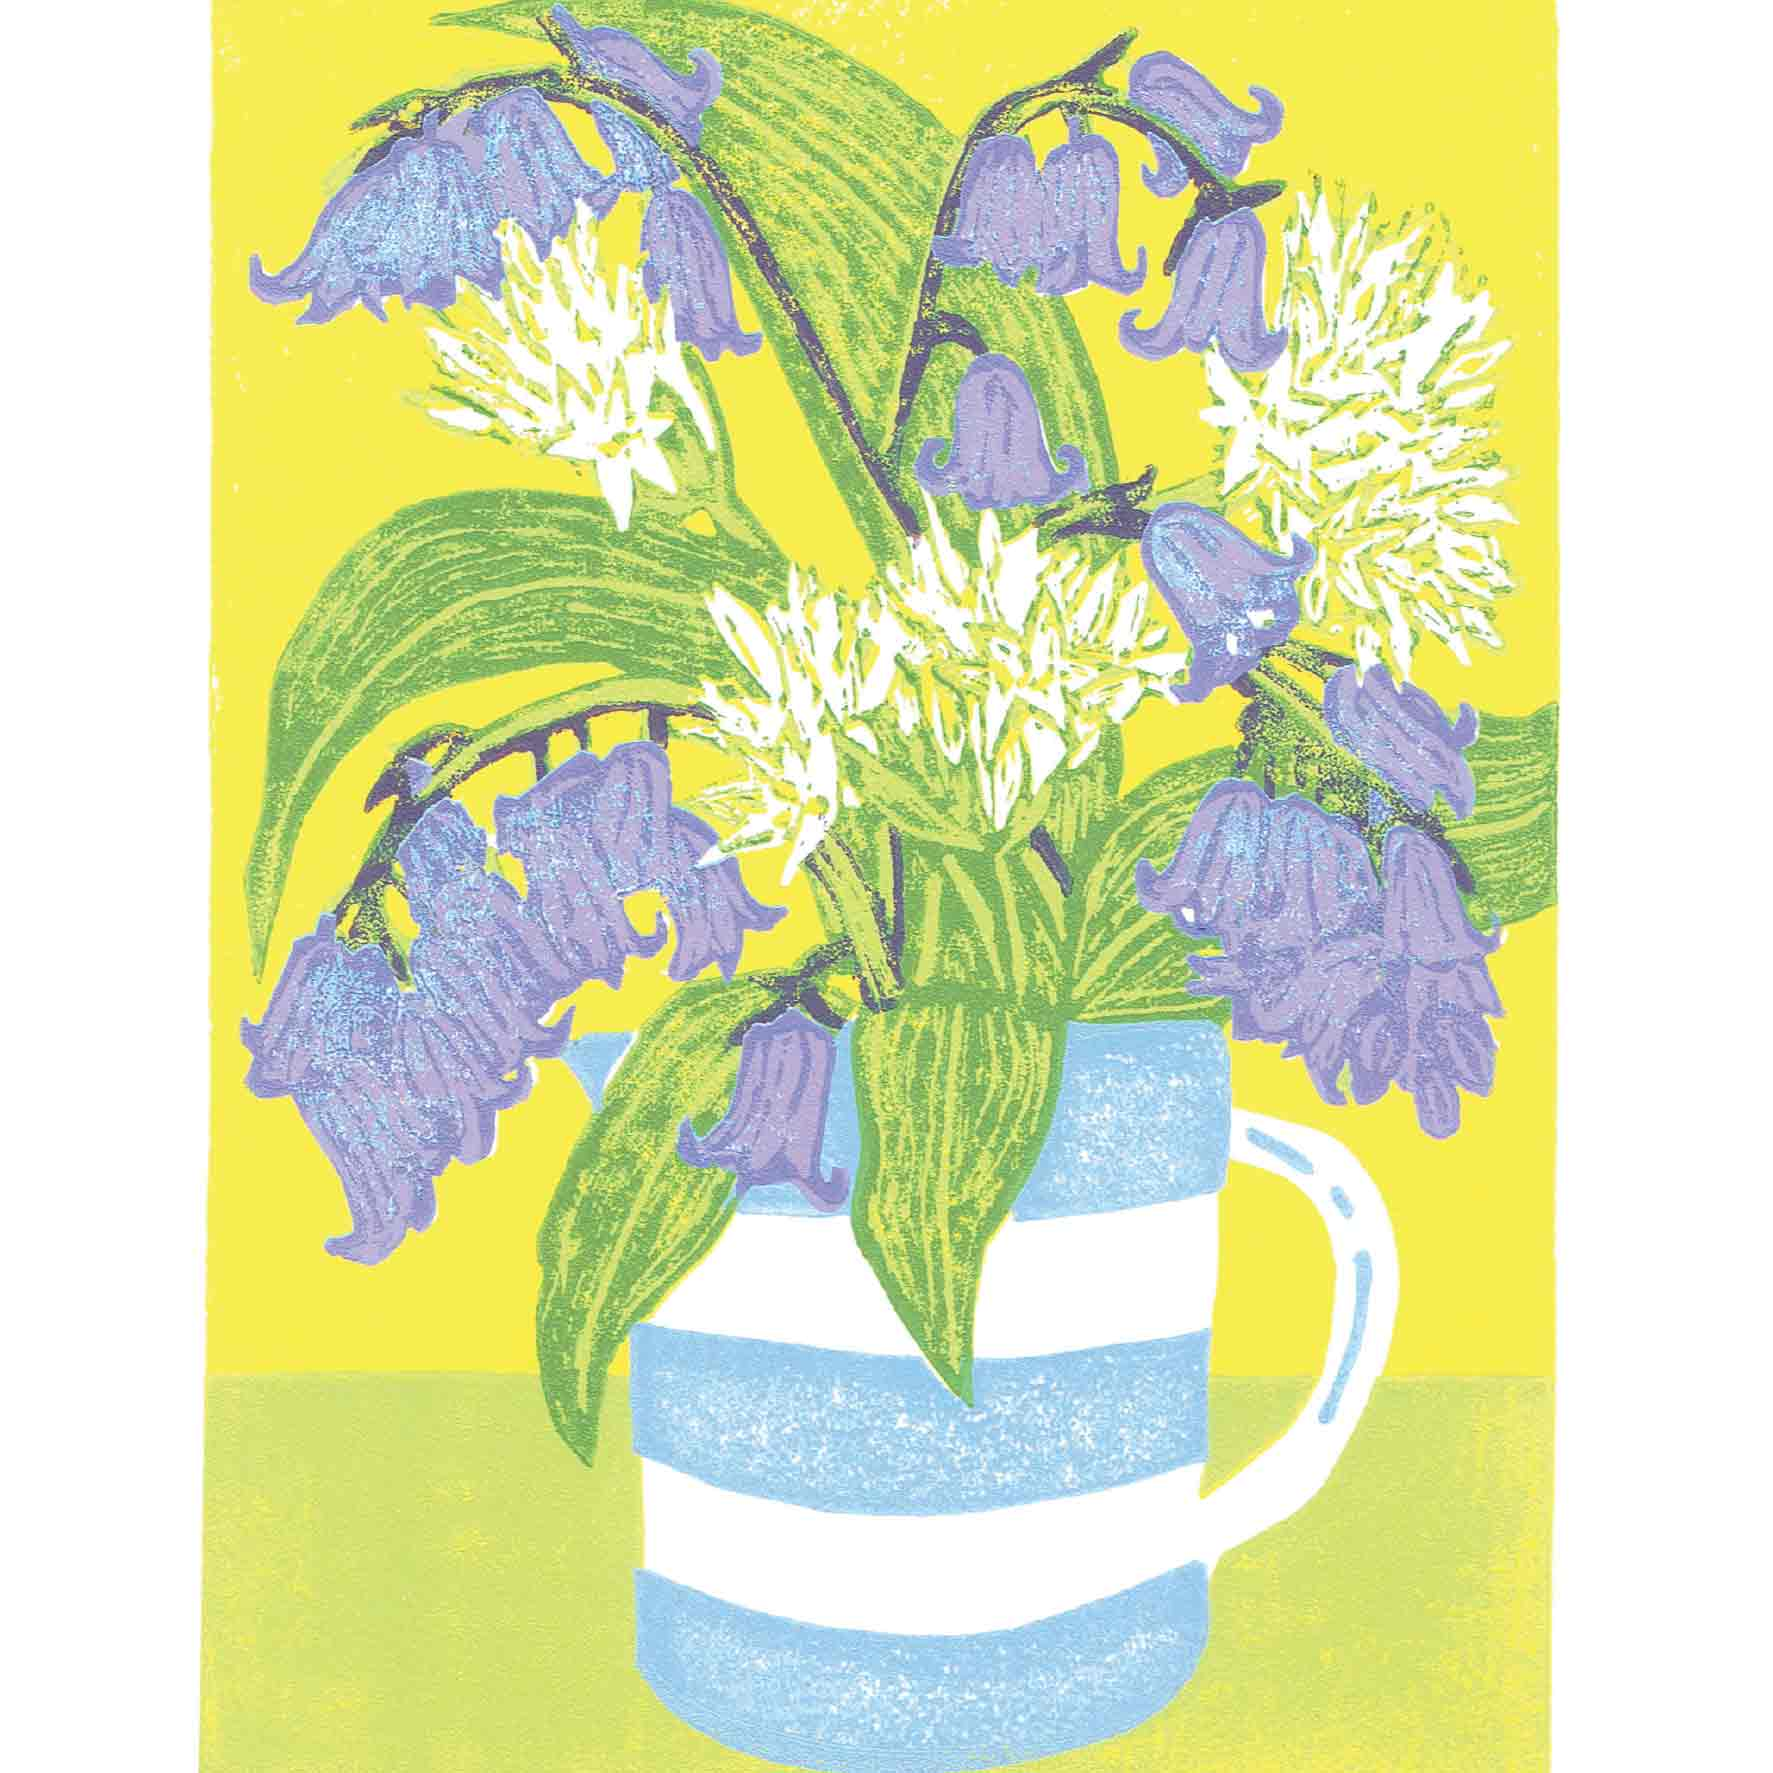 Art Greeting Card by Heather Ramskill, Bluebells and Ramsons, Linocut, Flowers in jug